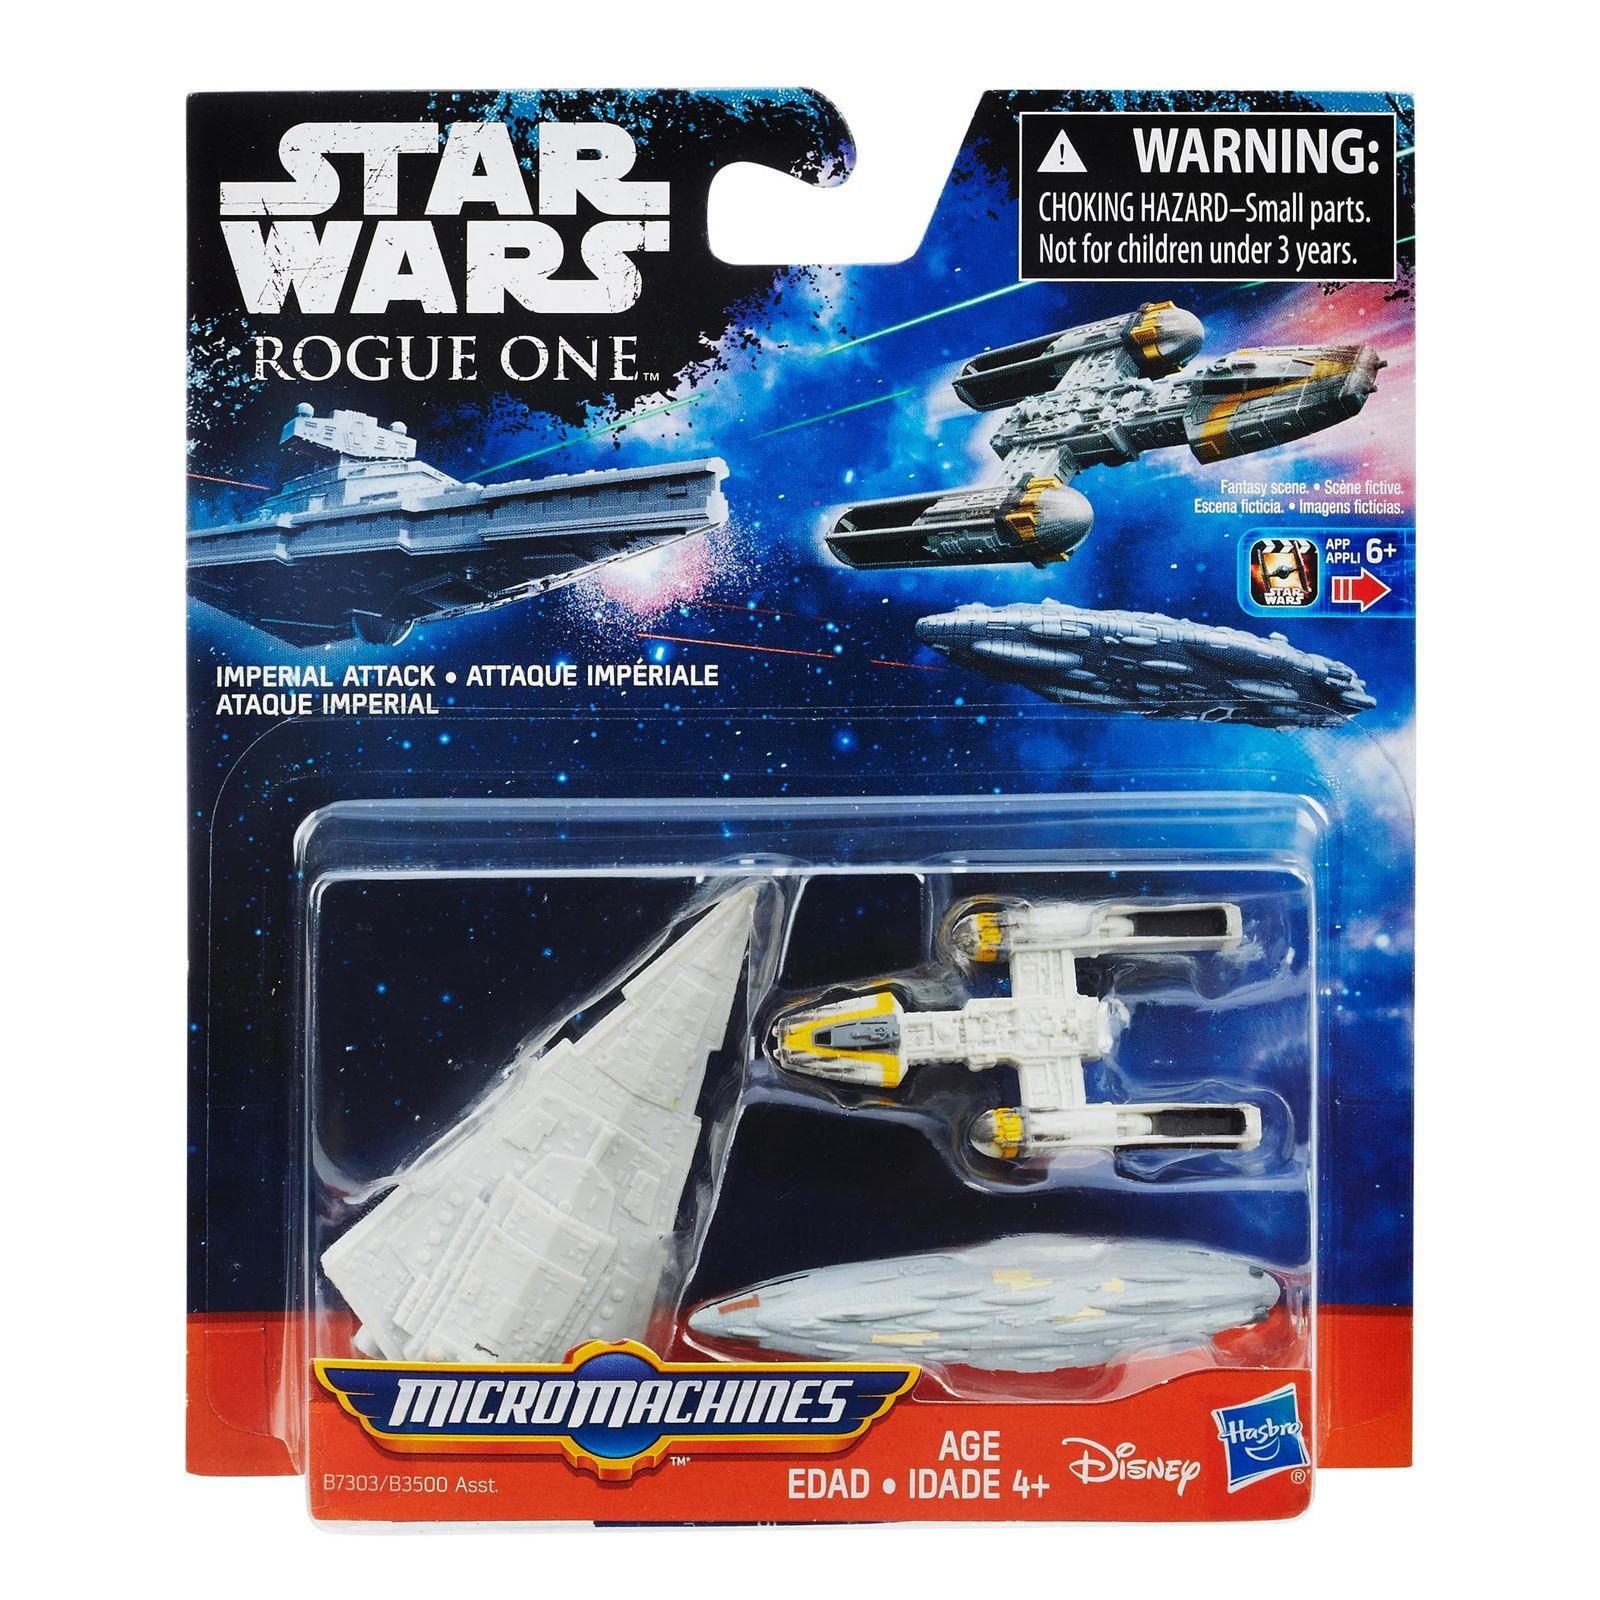 Star Wars Rogue One Micro Machines 3 Pack of iconic Movie Vehicles ...